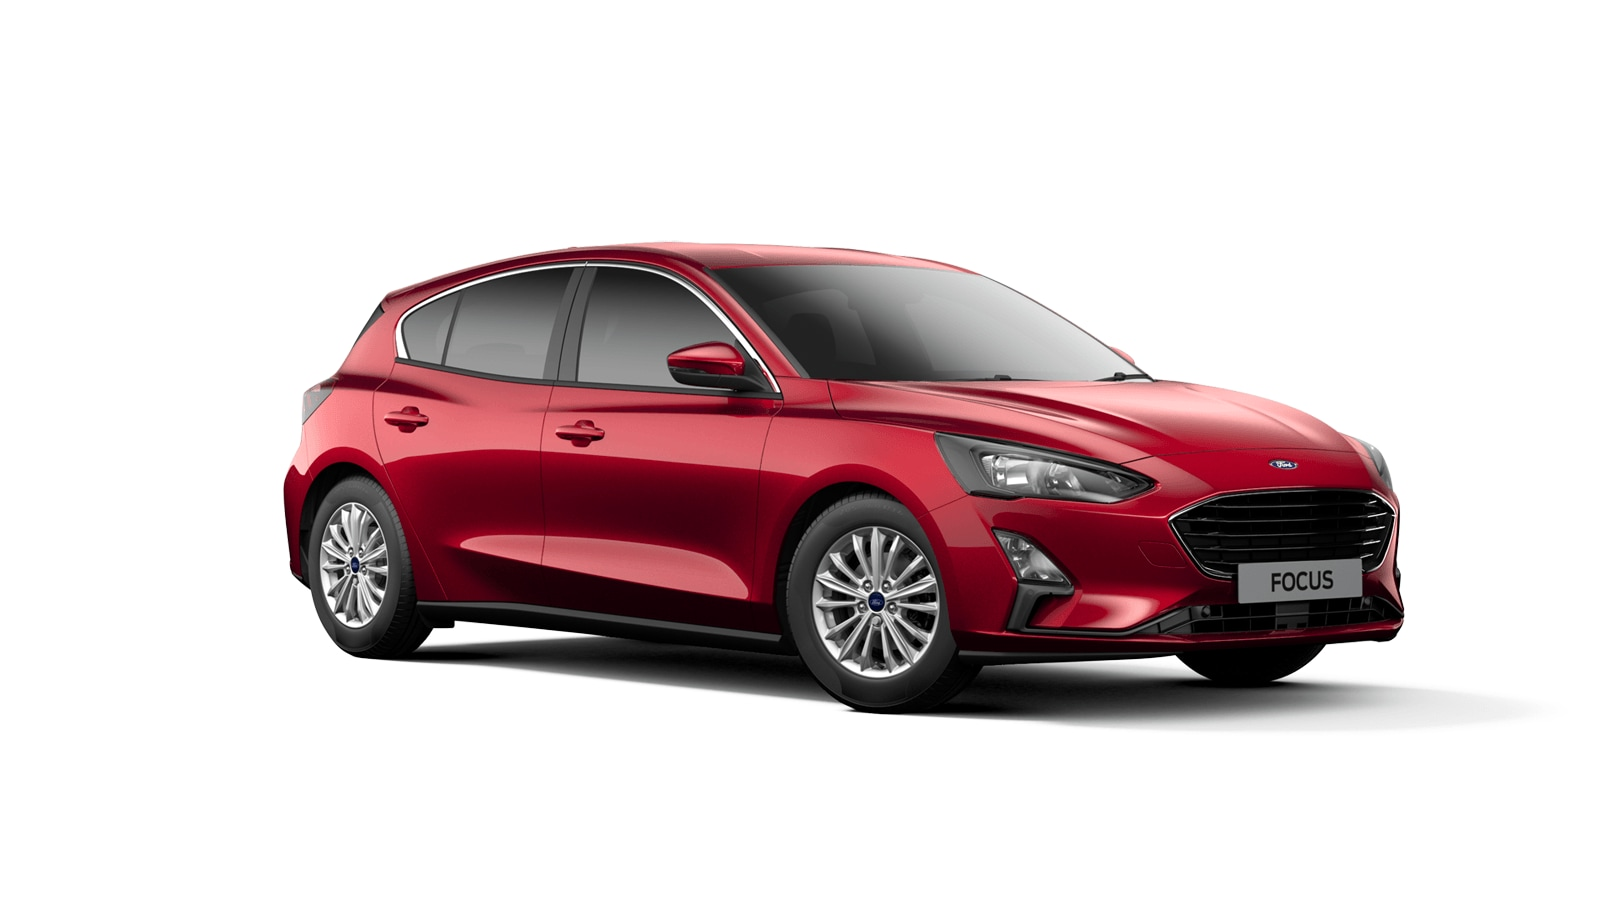 https://www.dealerinternet.co.uk/images/FOCUS%20C346/2019.75/5%20Door/Titanium/RUBY-RED.png